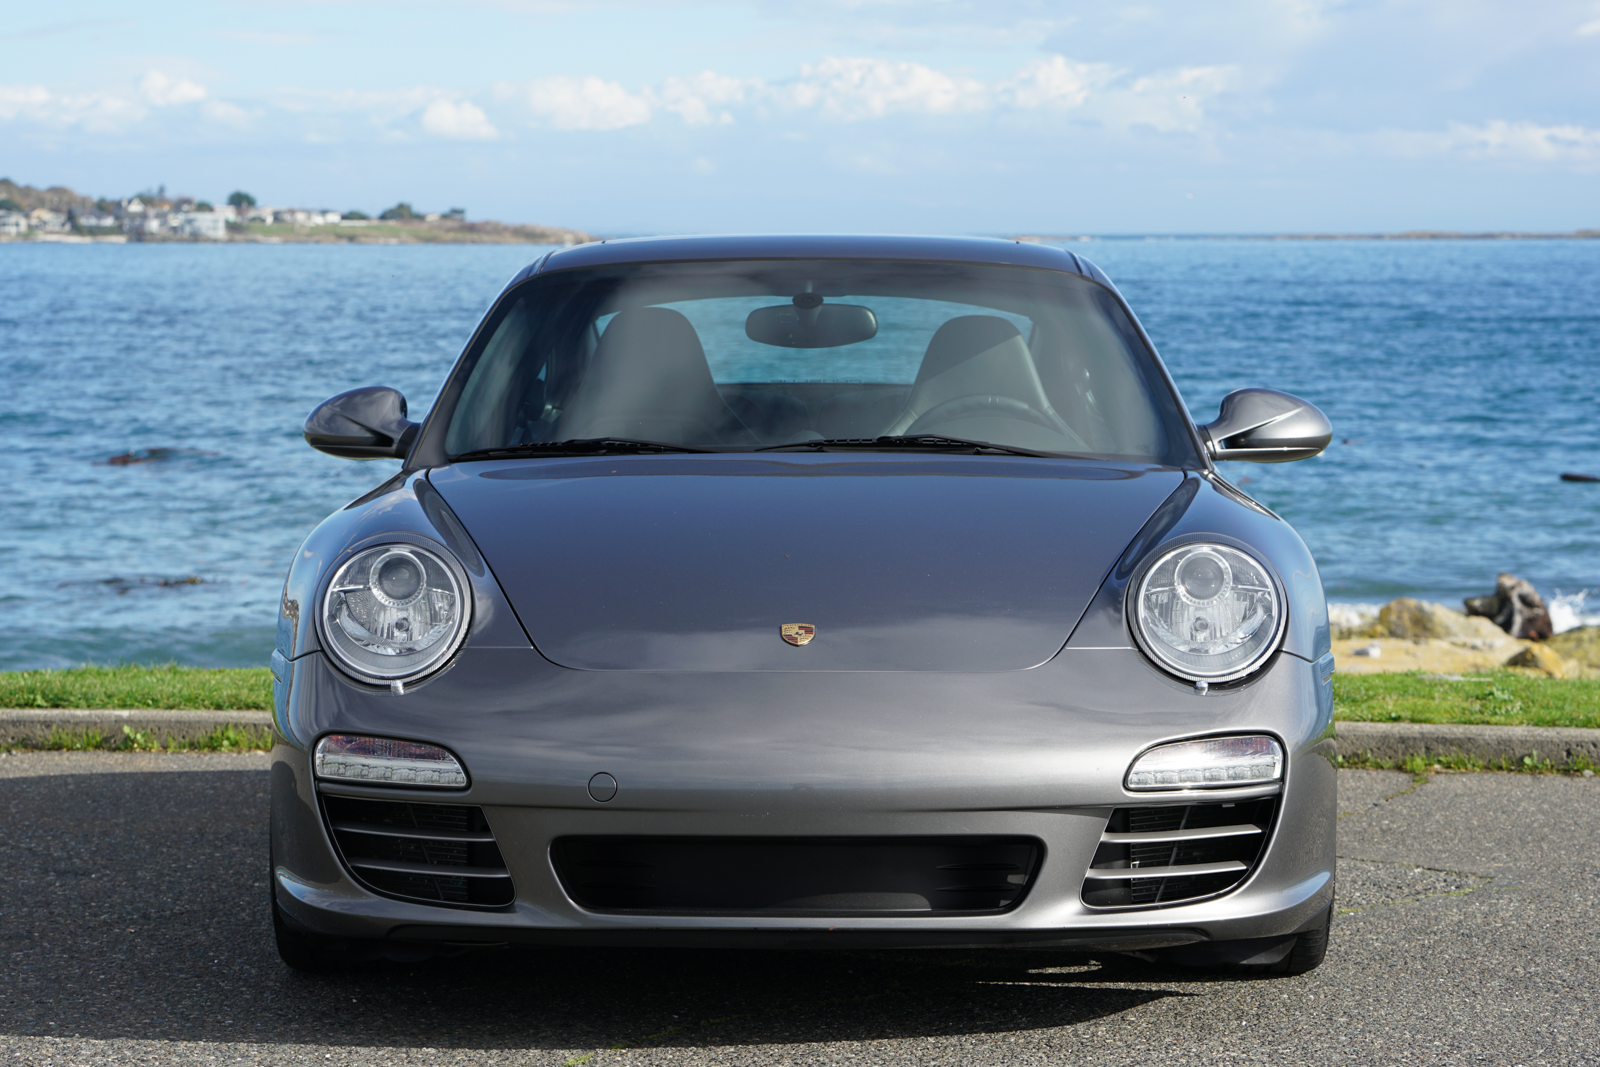 2009 Porsche 911 Carrera 4S Launch Edition for sale